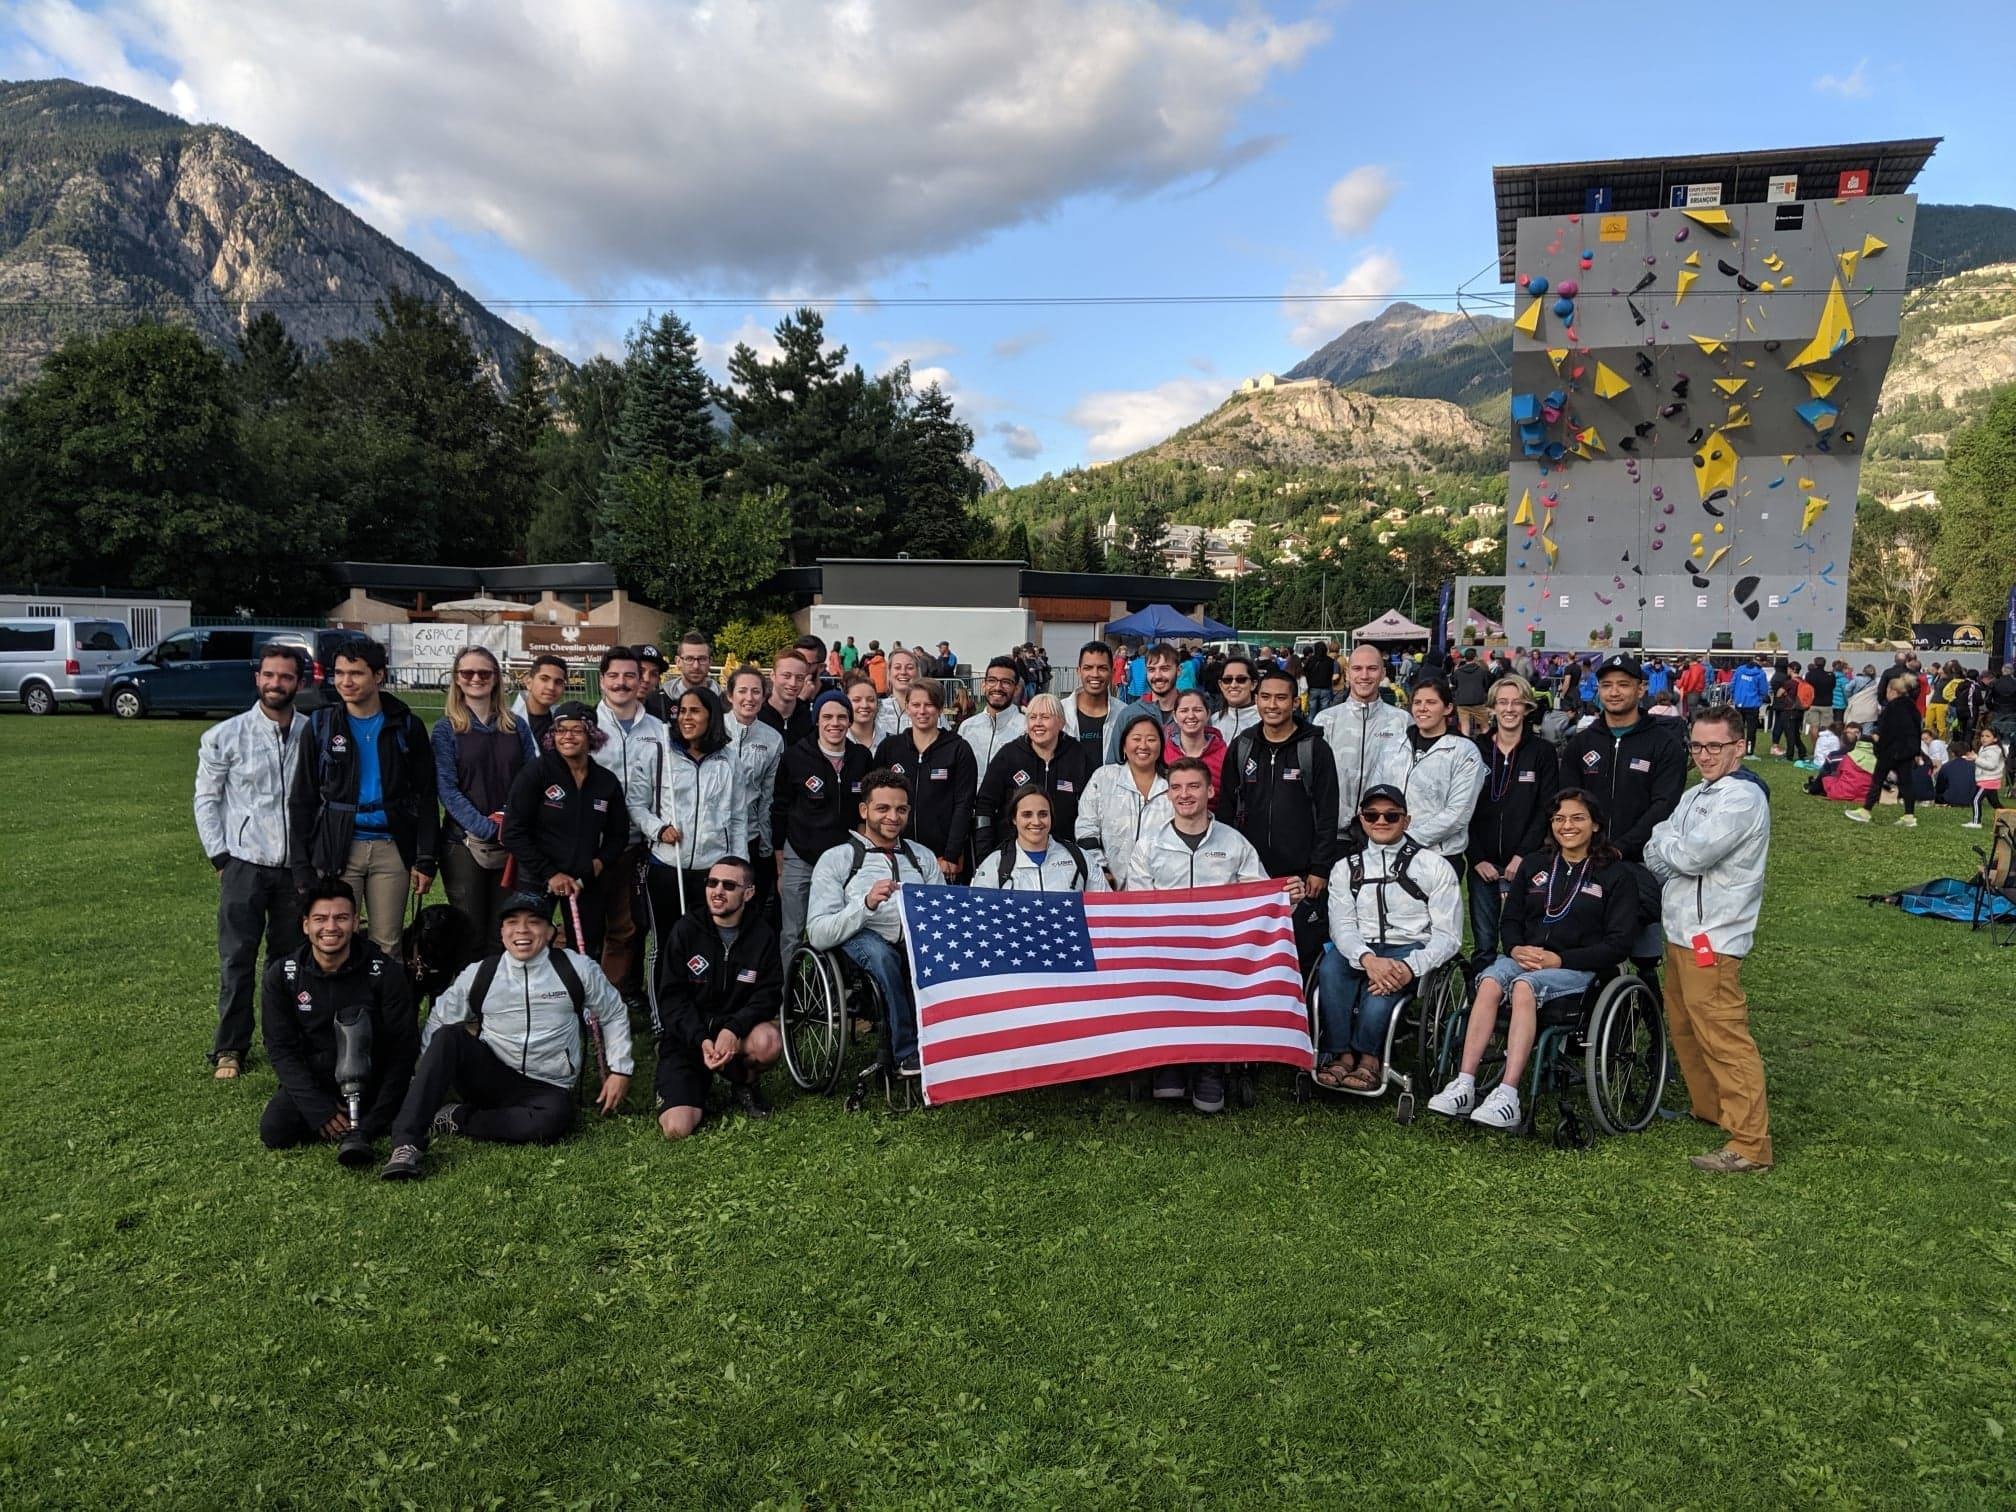 2019 Team USA Paraclimbing at the World Championships in Briancon, France